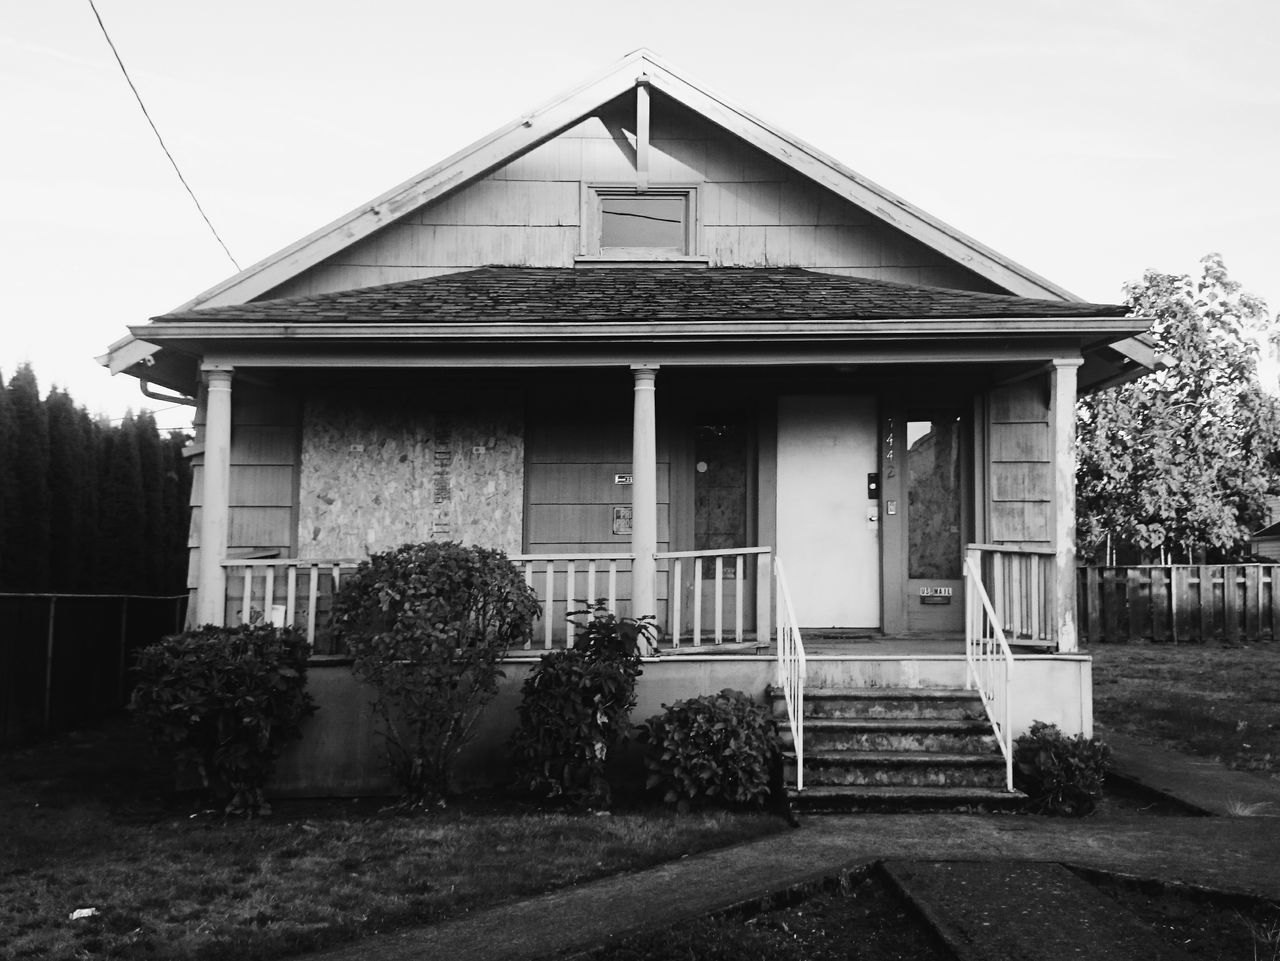 Abandoned Abandoned & Derelict No People Dark Black&white Black & White Monochrome Boarded Up Portland Portland, OR North Portland Abandoned House Symmetry Rule Of Thirds High Contrast